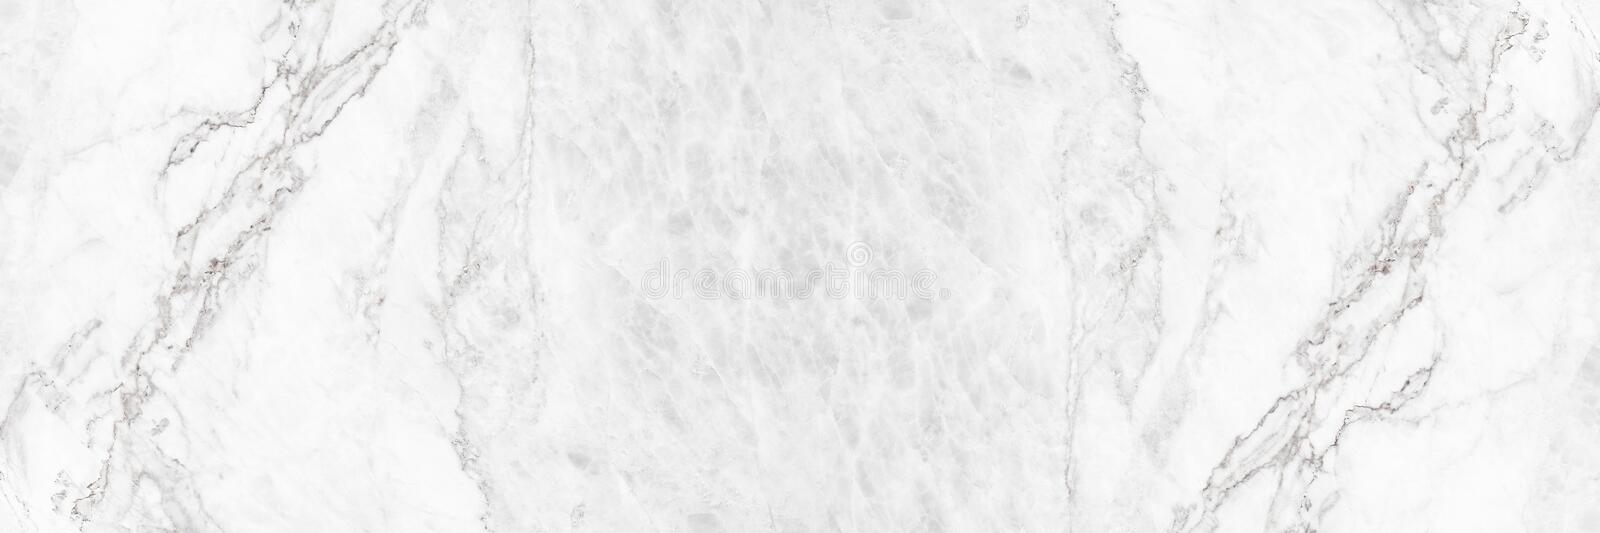 horizontal elegant white marble texture abstract background royalty free stock image